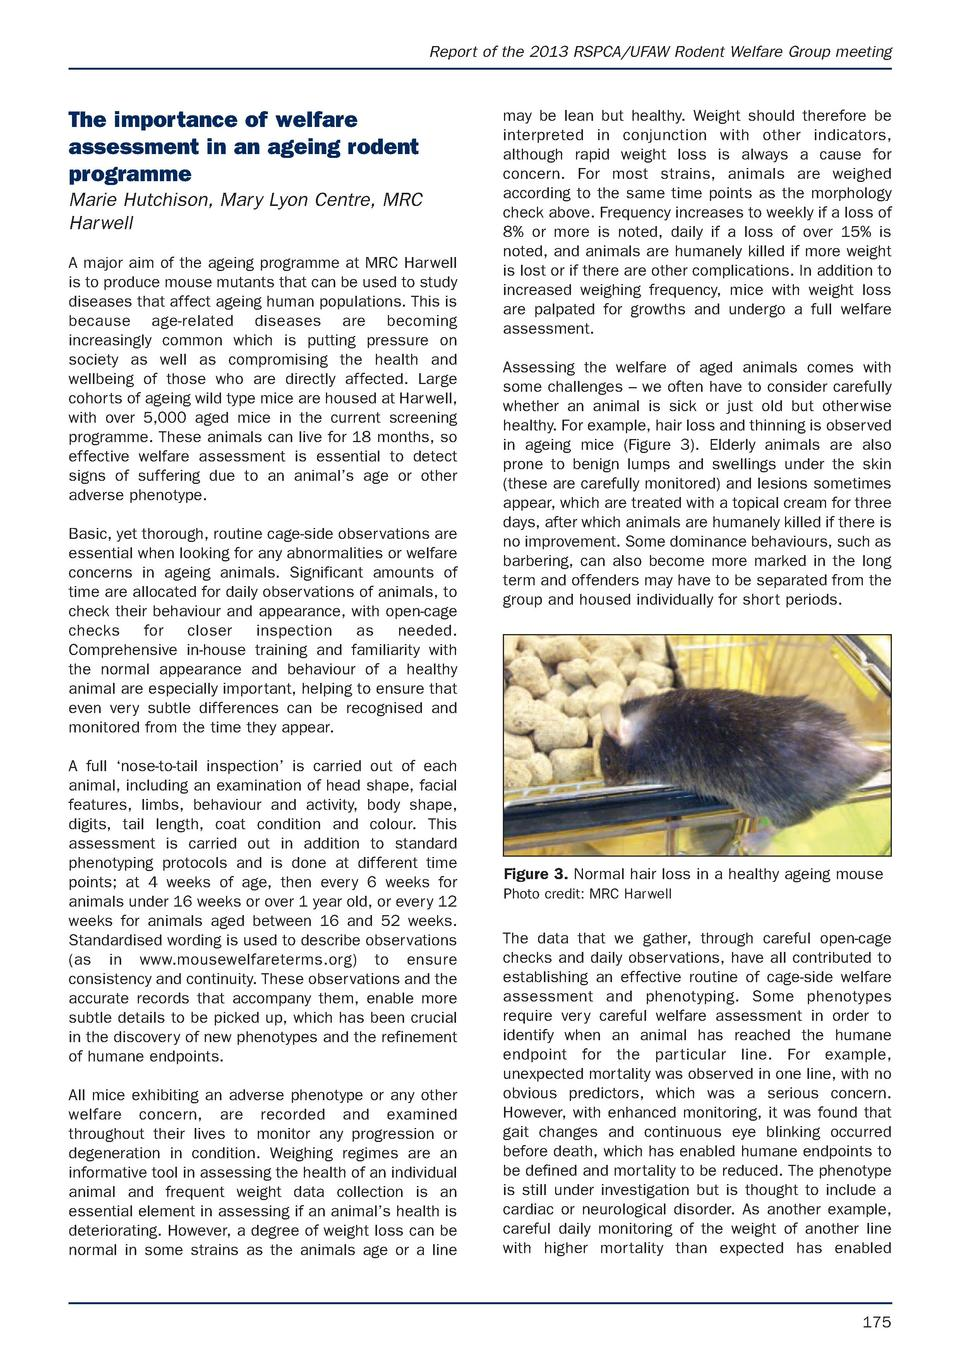 Report of the 2013 RSPCA UFAW Rodent Welfare Group meeting  The importance of welfare assessment in an ageing rodent progr...